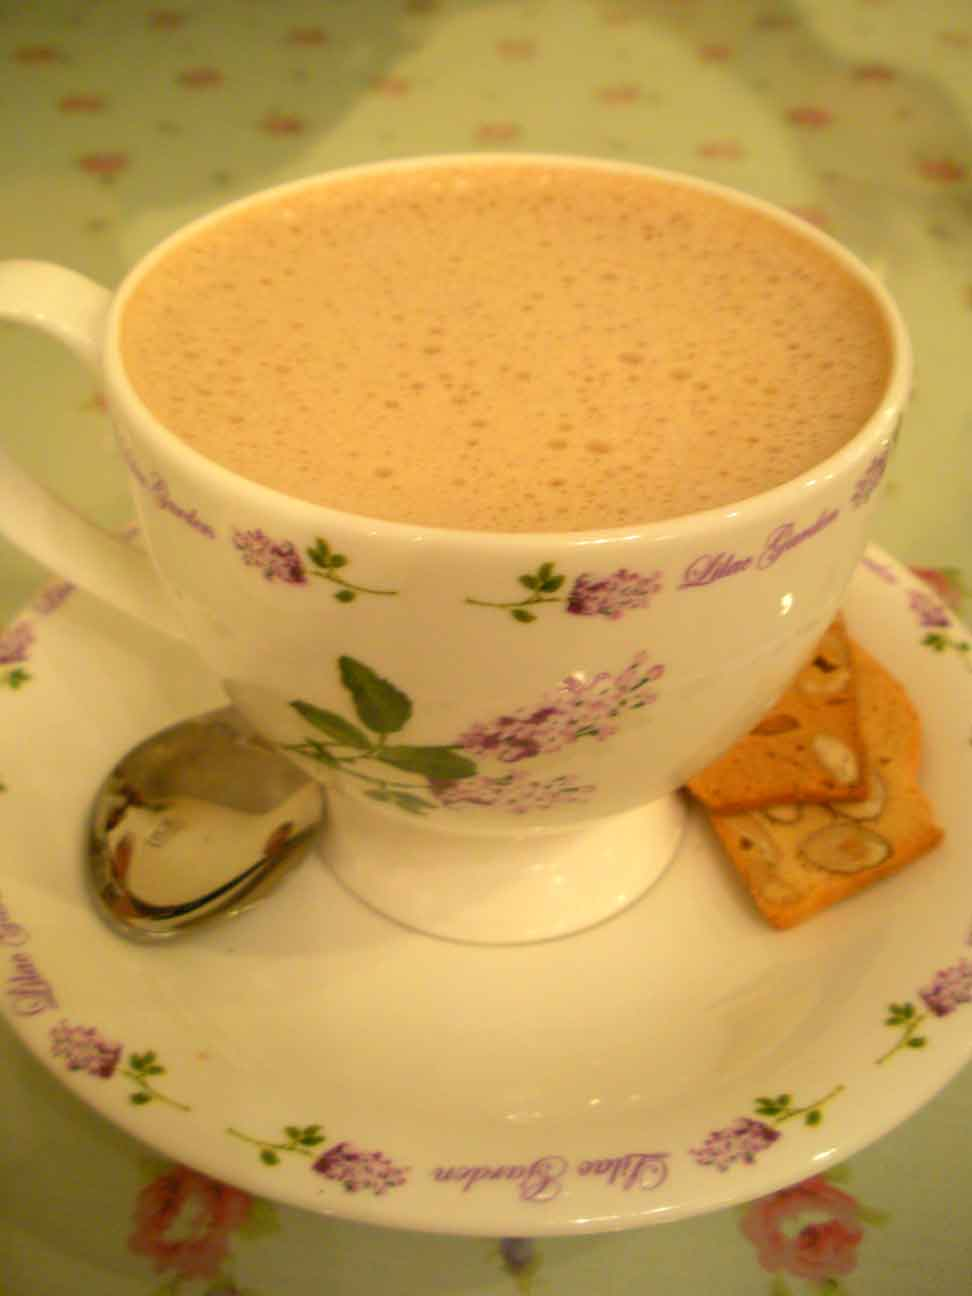 Annabelle's Place - hot chocolate